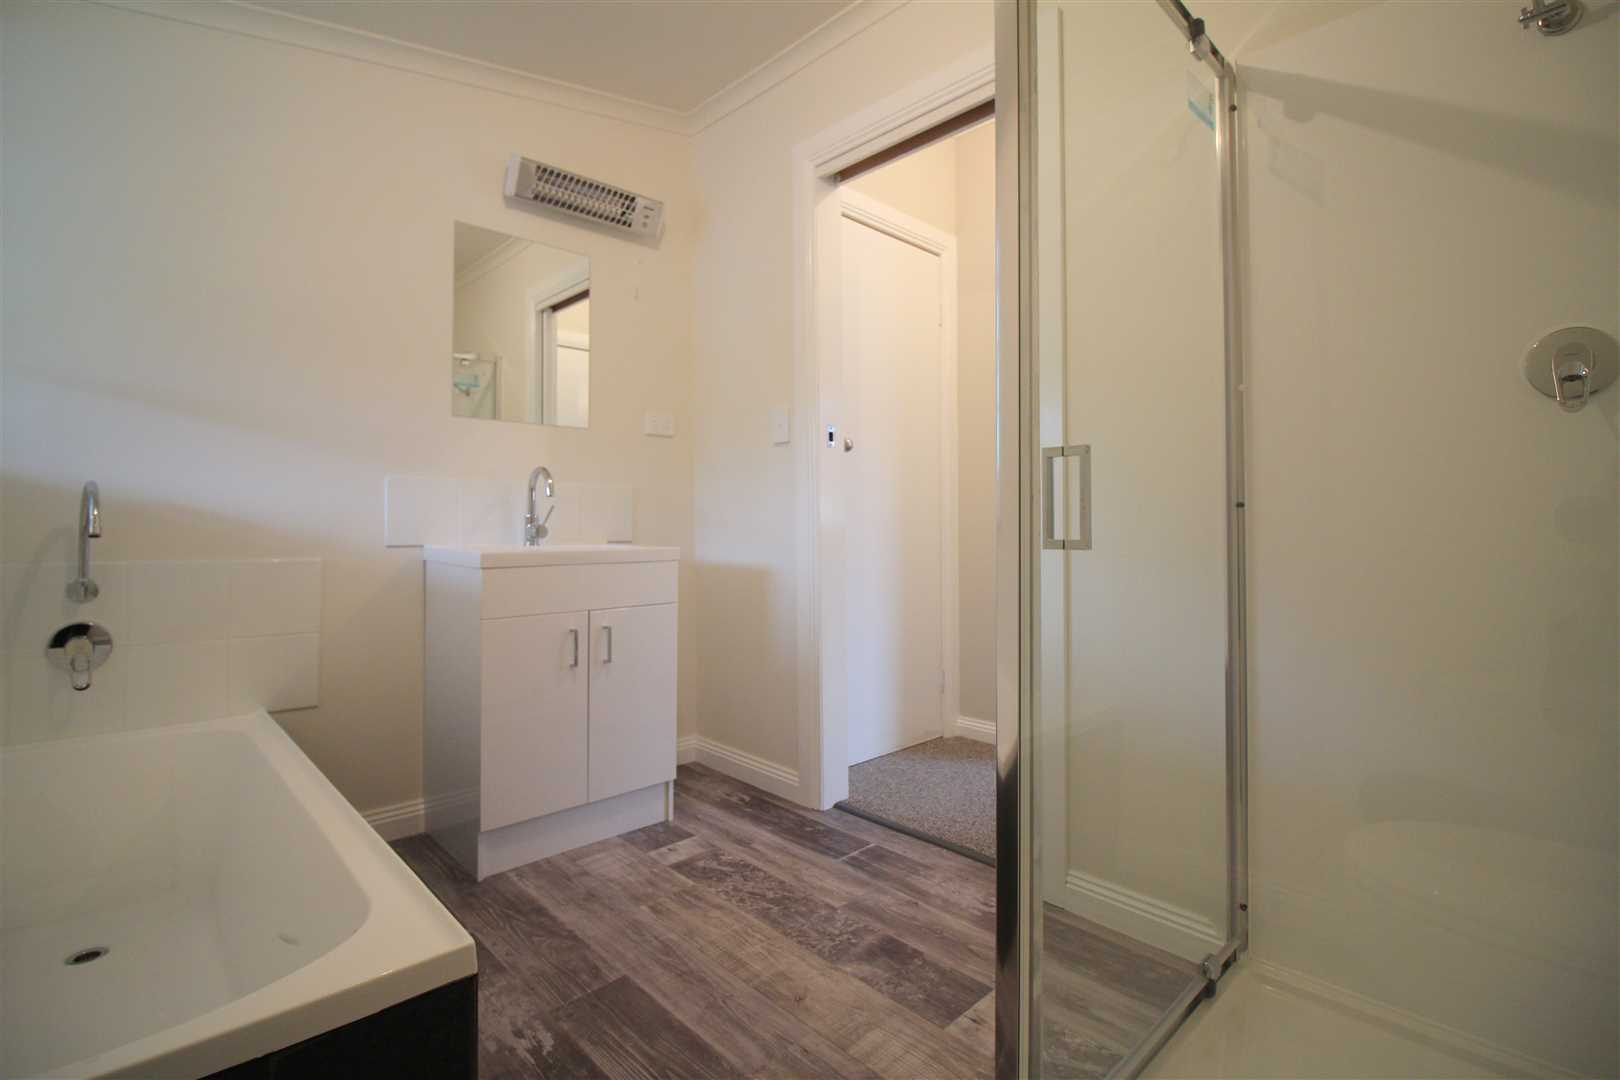 Renovated Bathroom With Bath & Separate Shower